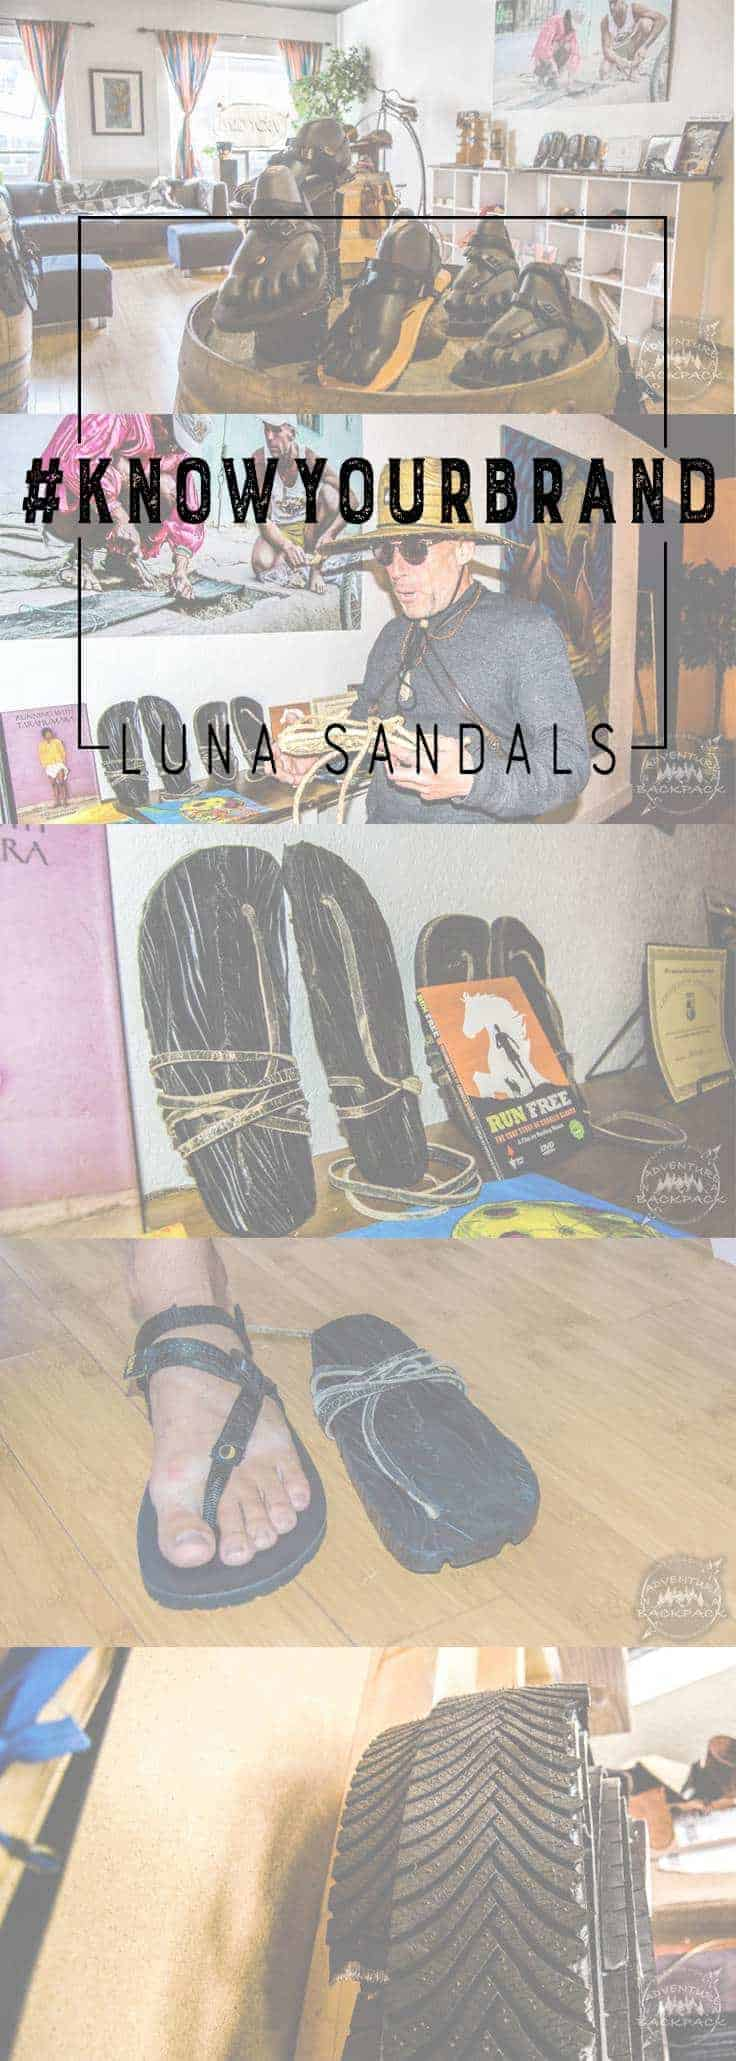 Could human movement be considered eco-friendly?  Sure!  See why in our #knowyourbrand episode over luna sandals. Luna Sandals Running | Barefoot Running | Luna Sandals Barefoot | Luna Mono | Hiking Sandals | Minimalist Sandals | Outdoor Gear